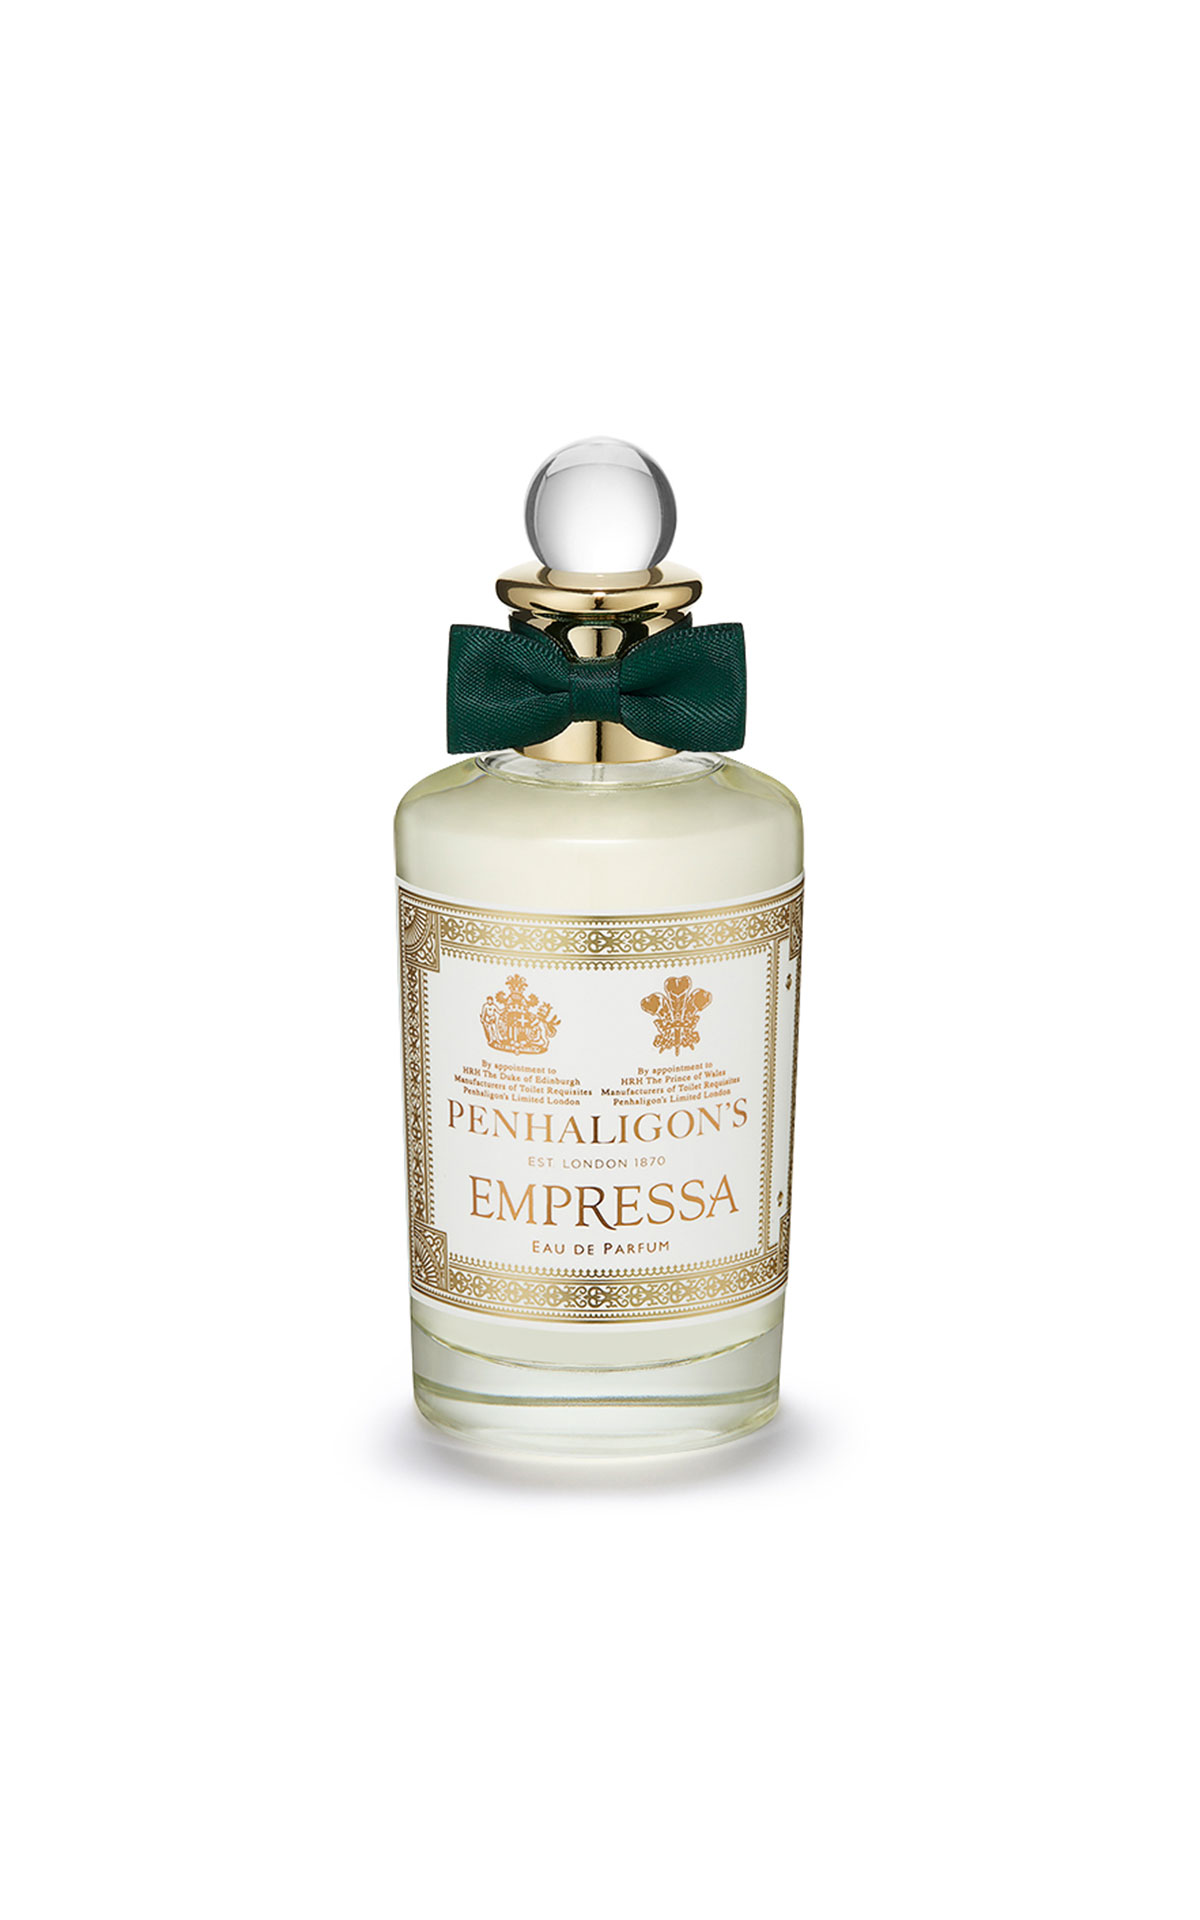 Penhaligon's Empressa 100ml from Bicester Village